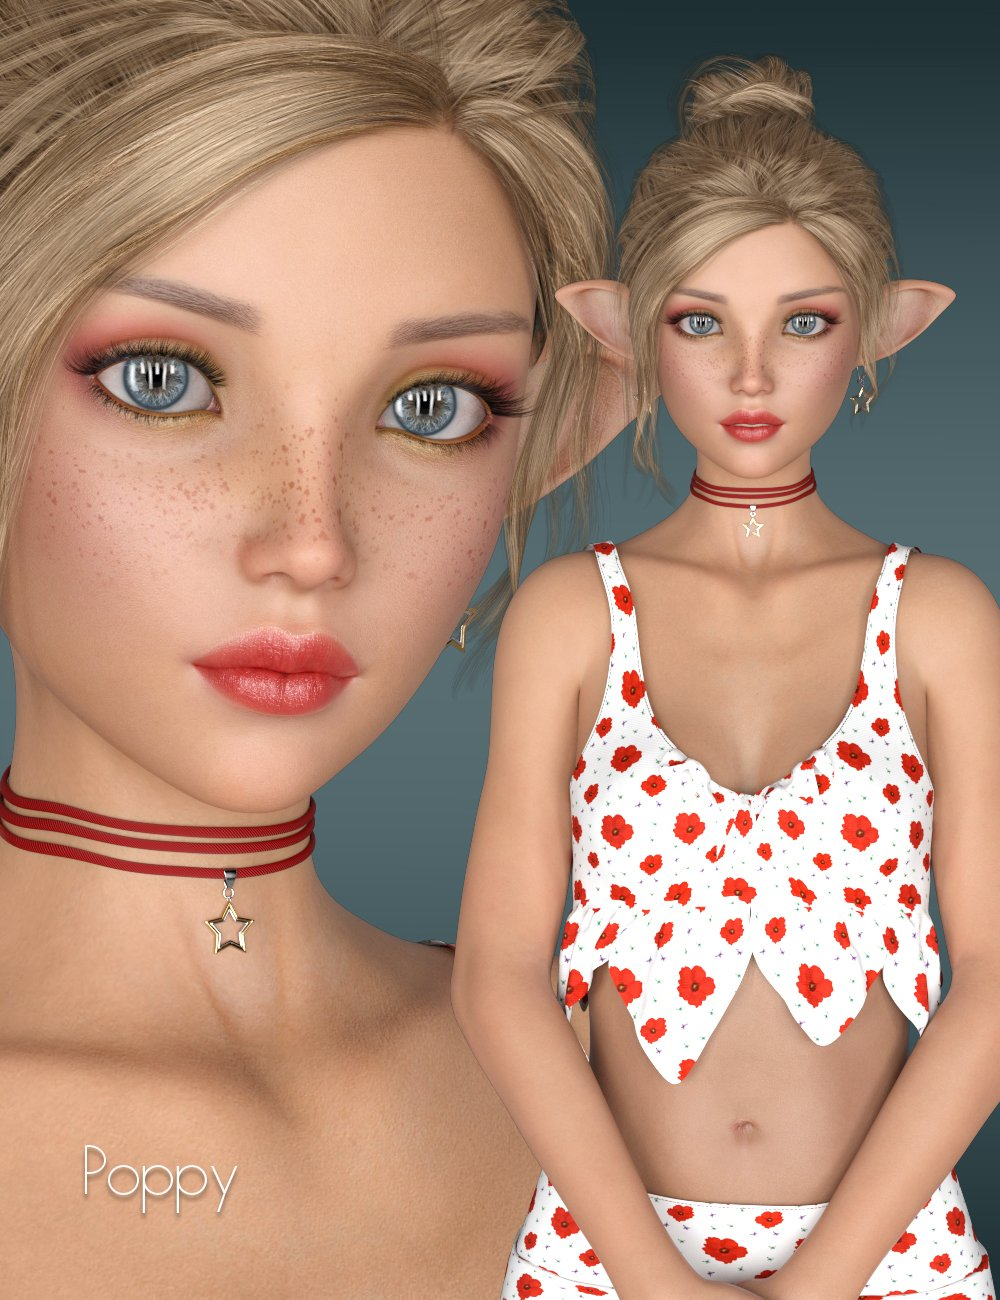 P3D Poppy for Kanade 8 by: P3Design, 3D Models by Daz 3D